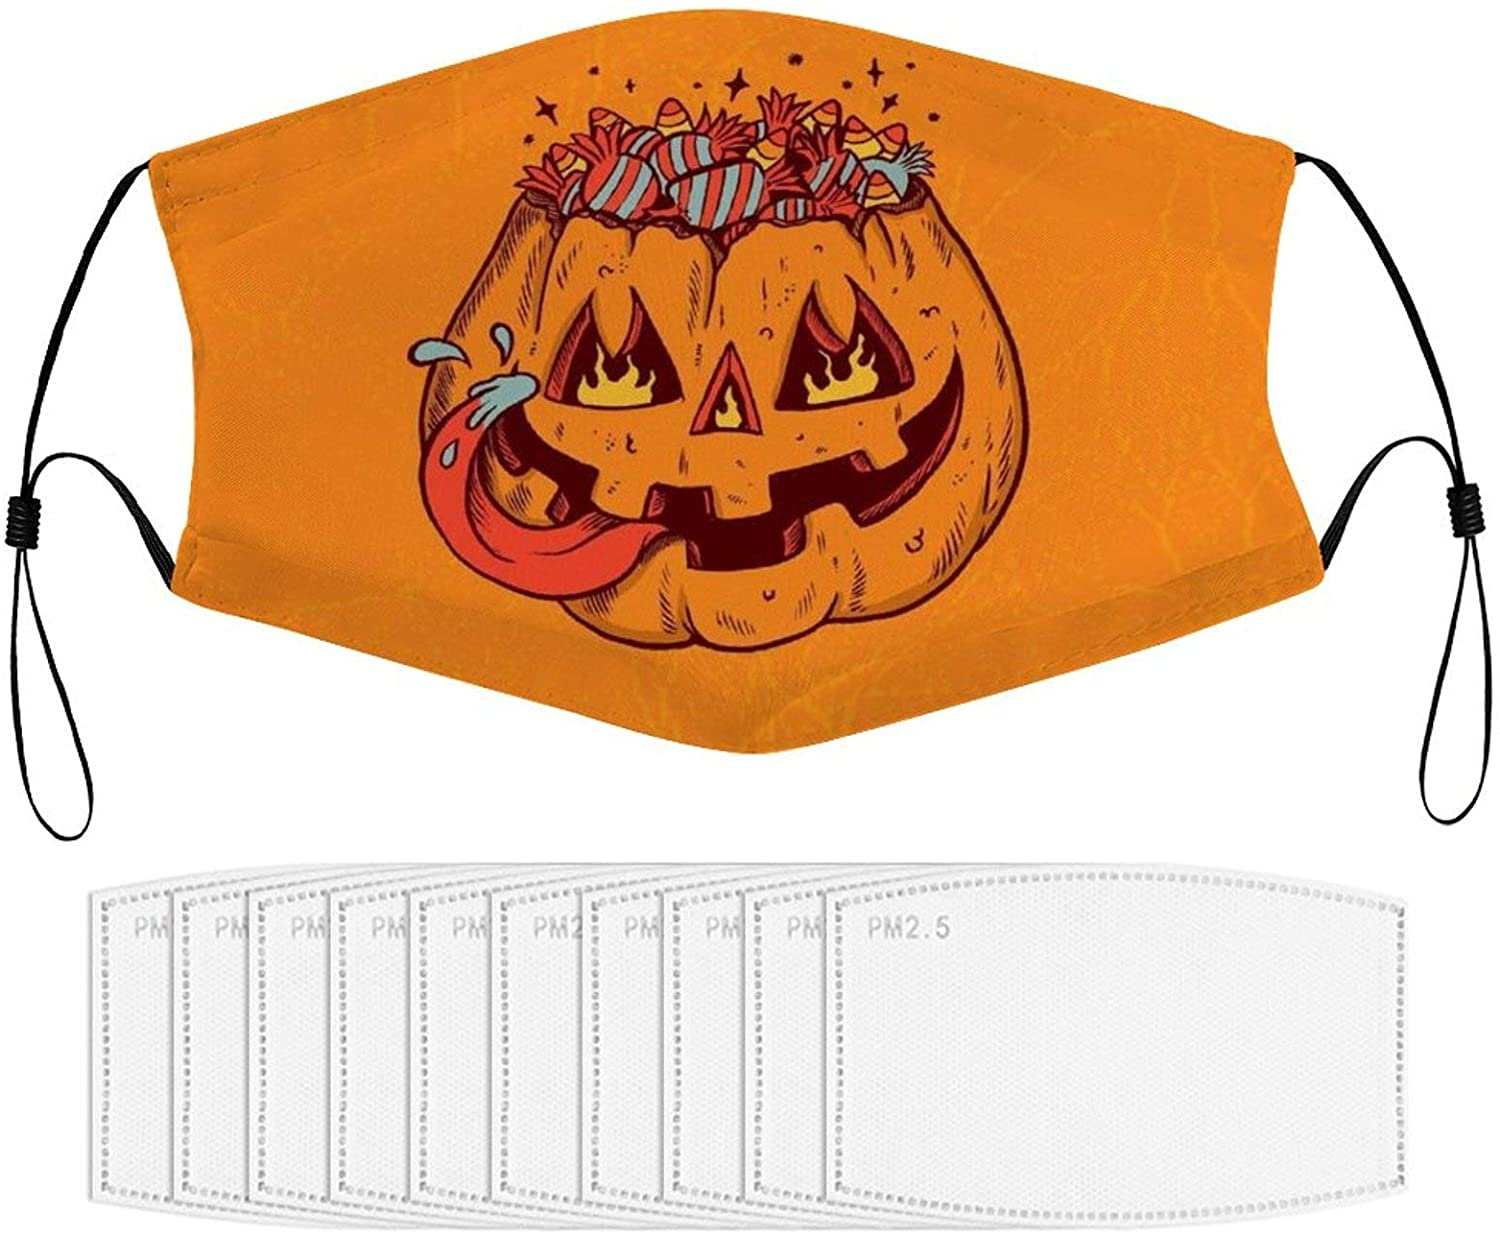 Face Mask Halloween Christmas Washable Earrings and Nose Line Comfortable Polyester Stretchy Fabric Protective with Adjustable Earband Suitable for Activities Outdoor Running Cycling Workout